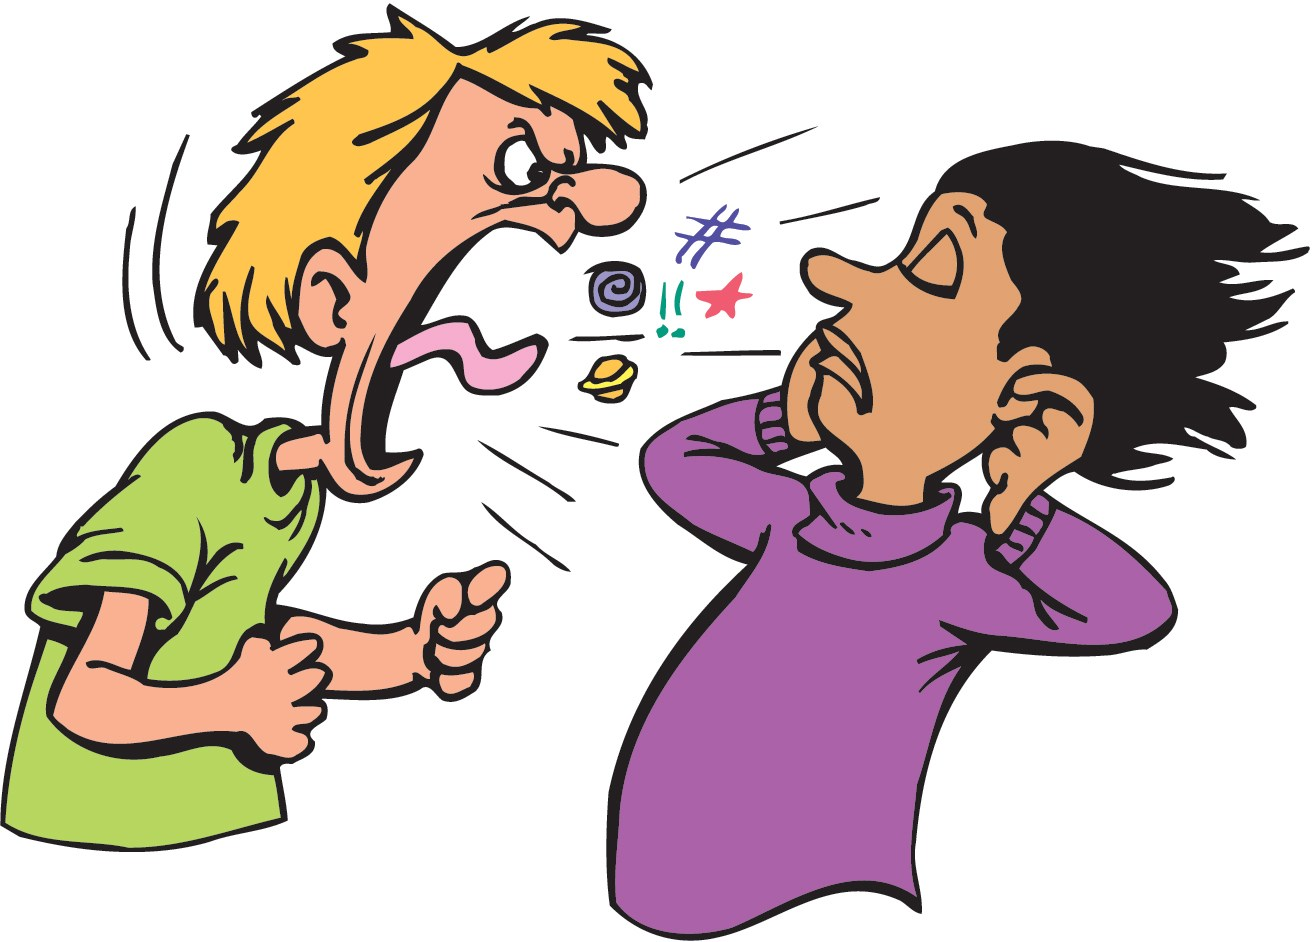 yelling-free-clipart-1